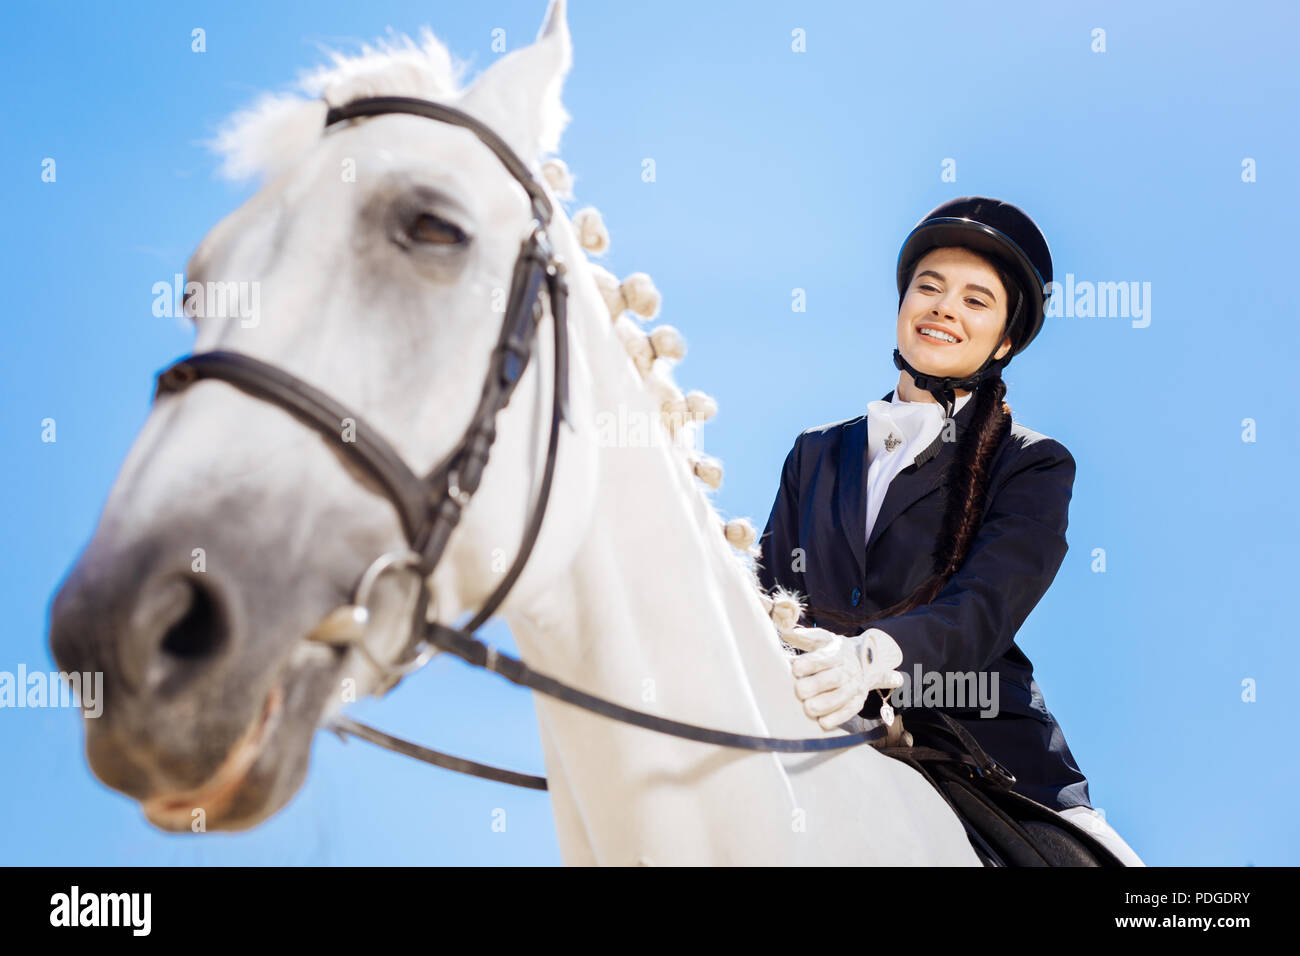 Horsewoman wearing white gloves sitting on her white horse - Stock Image